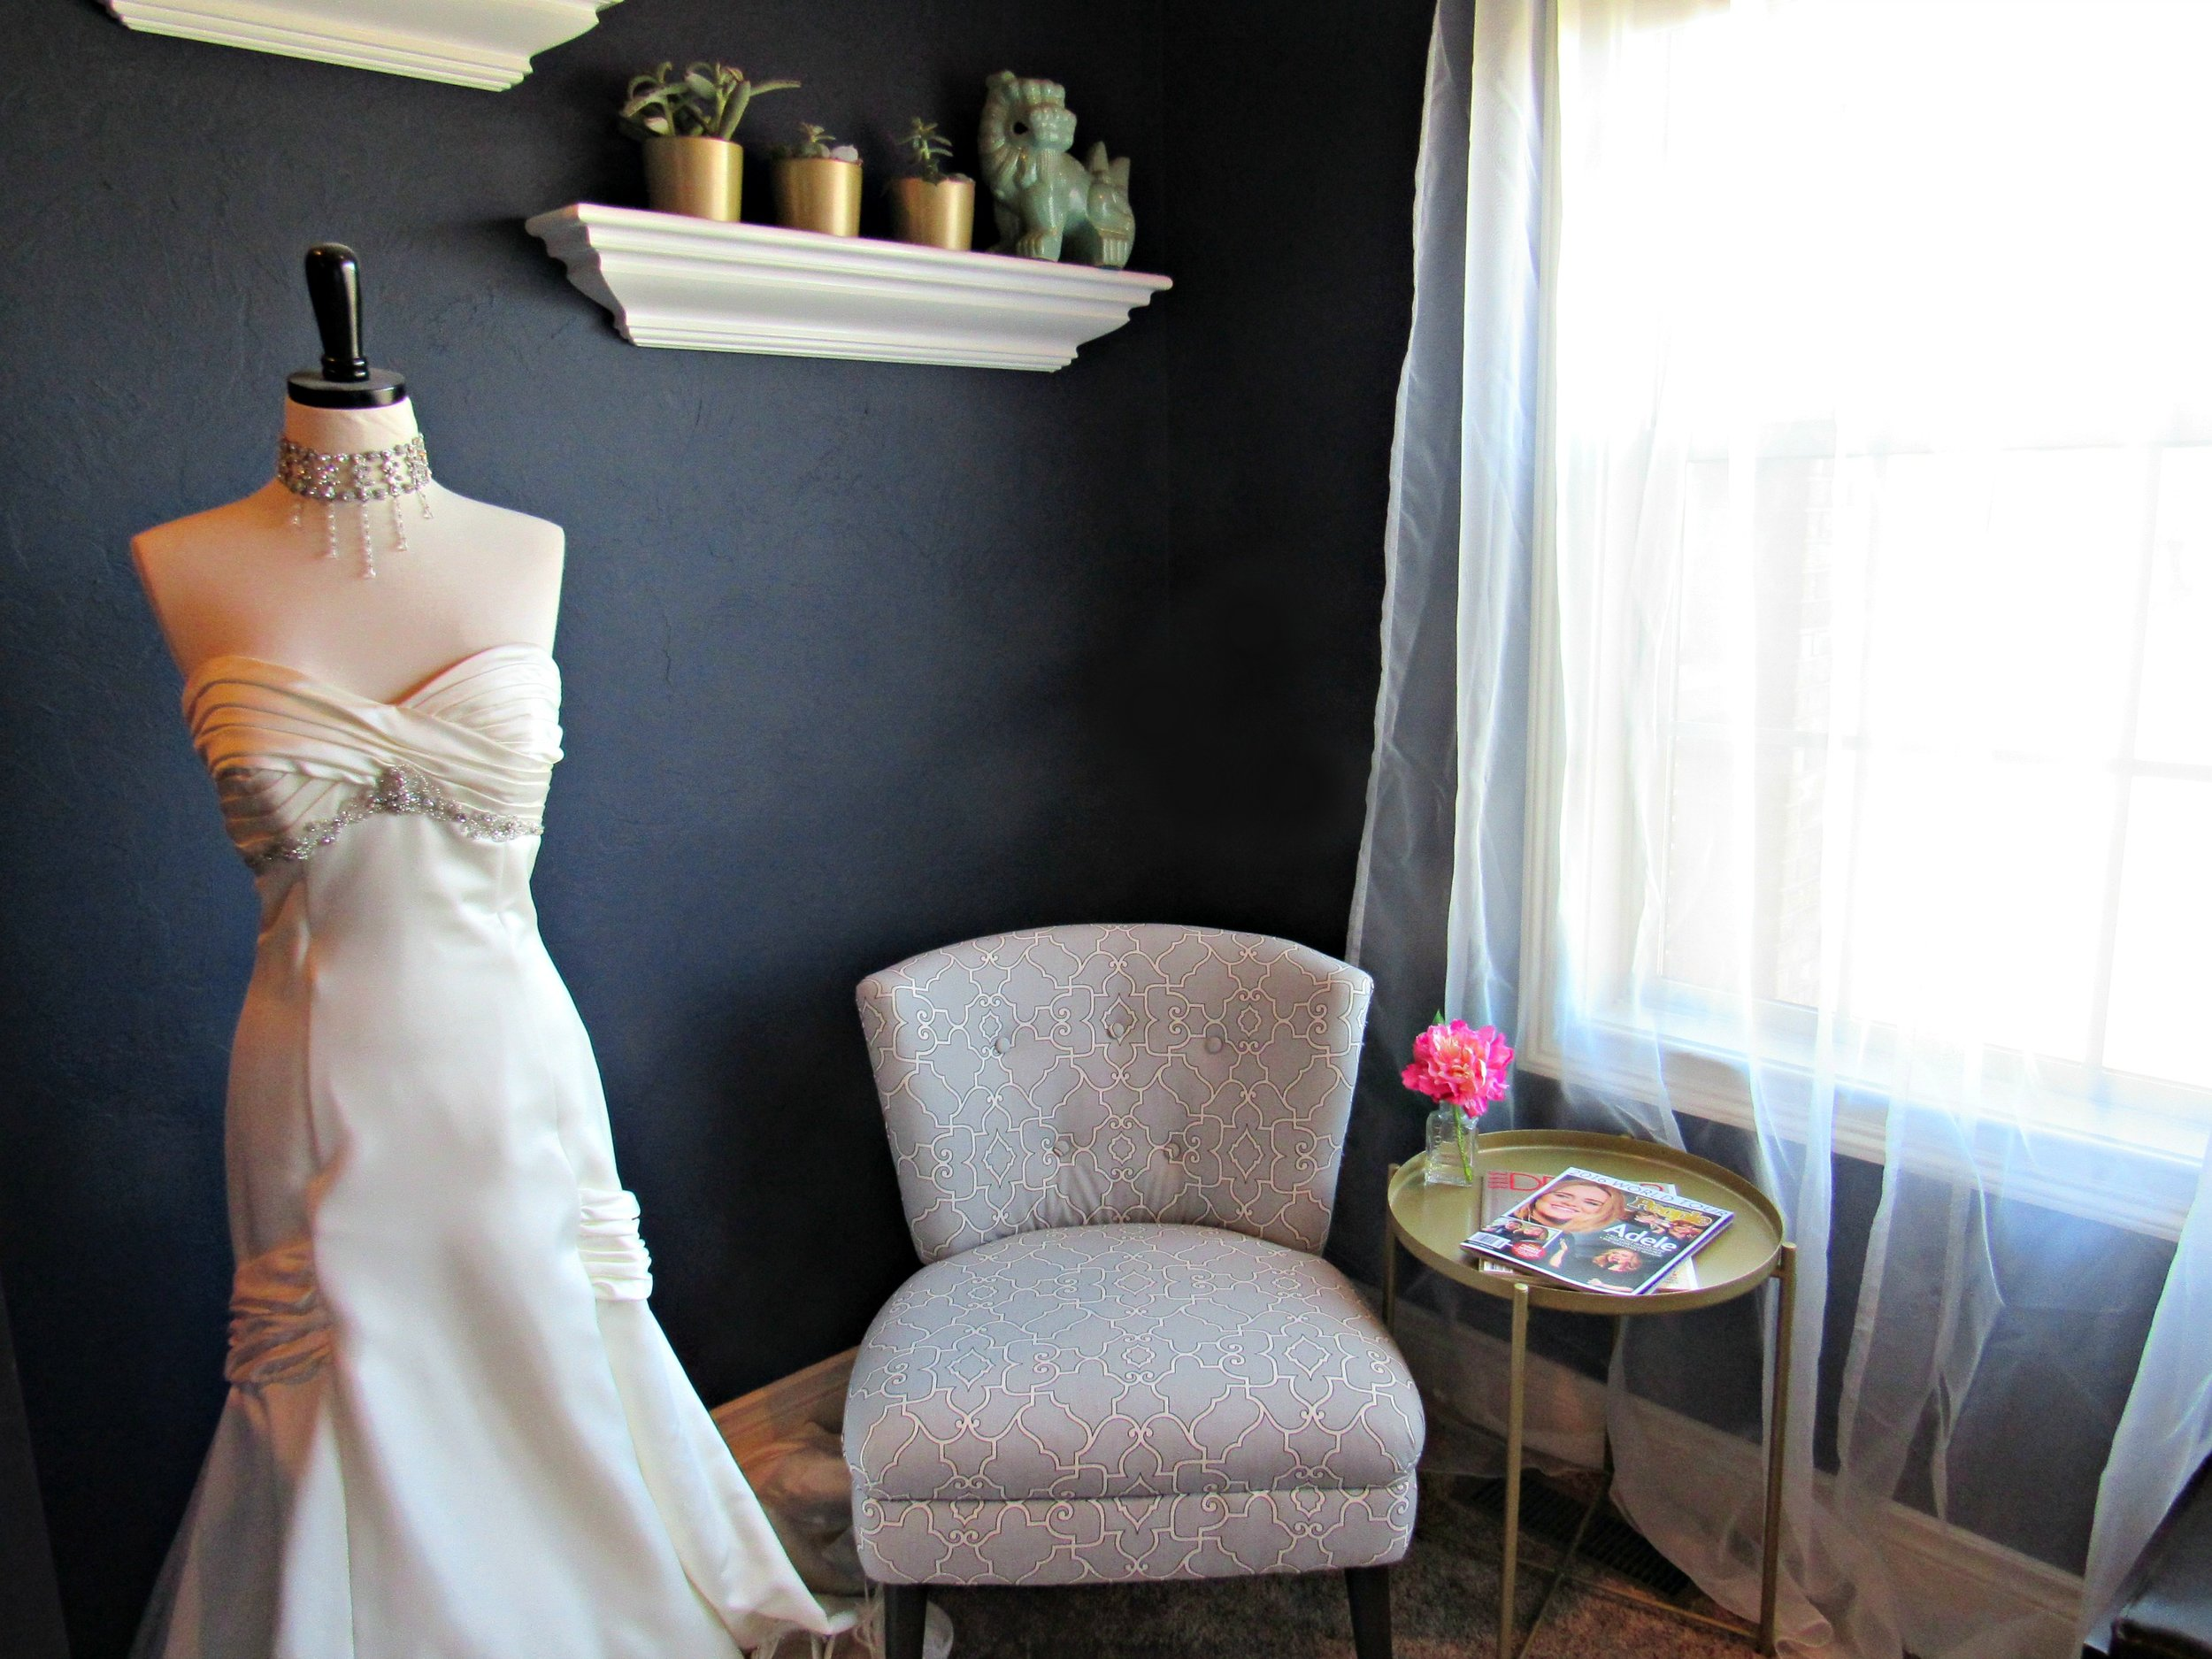 My favorite little corner.  That's my wedding dress on a dress form, and that chair is a DIY upholstery success!